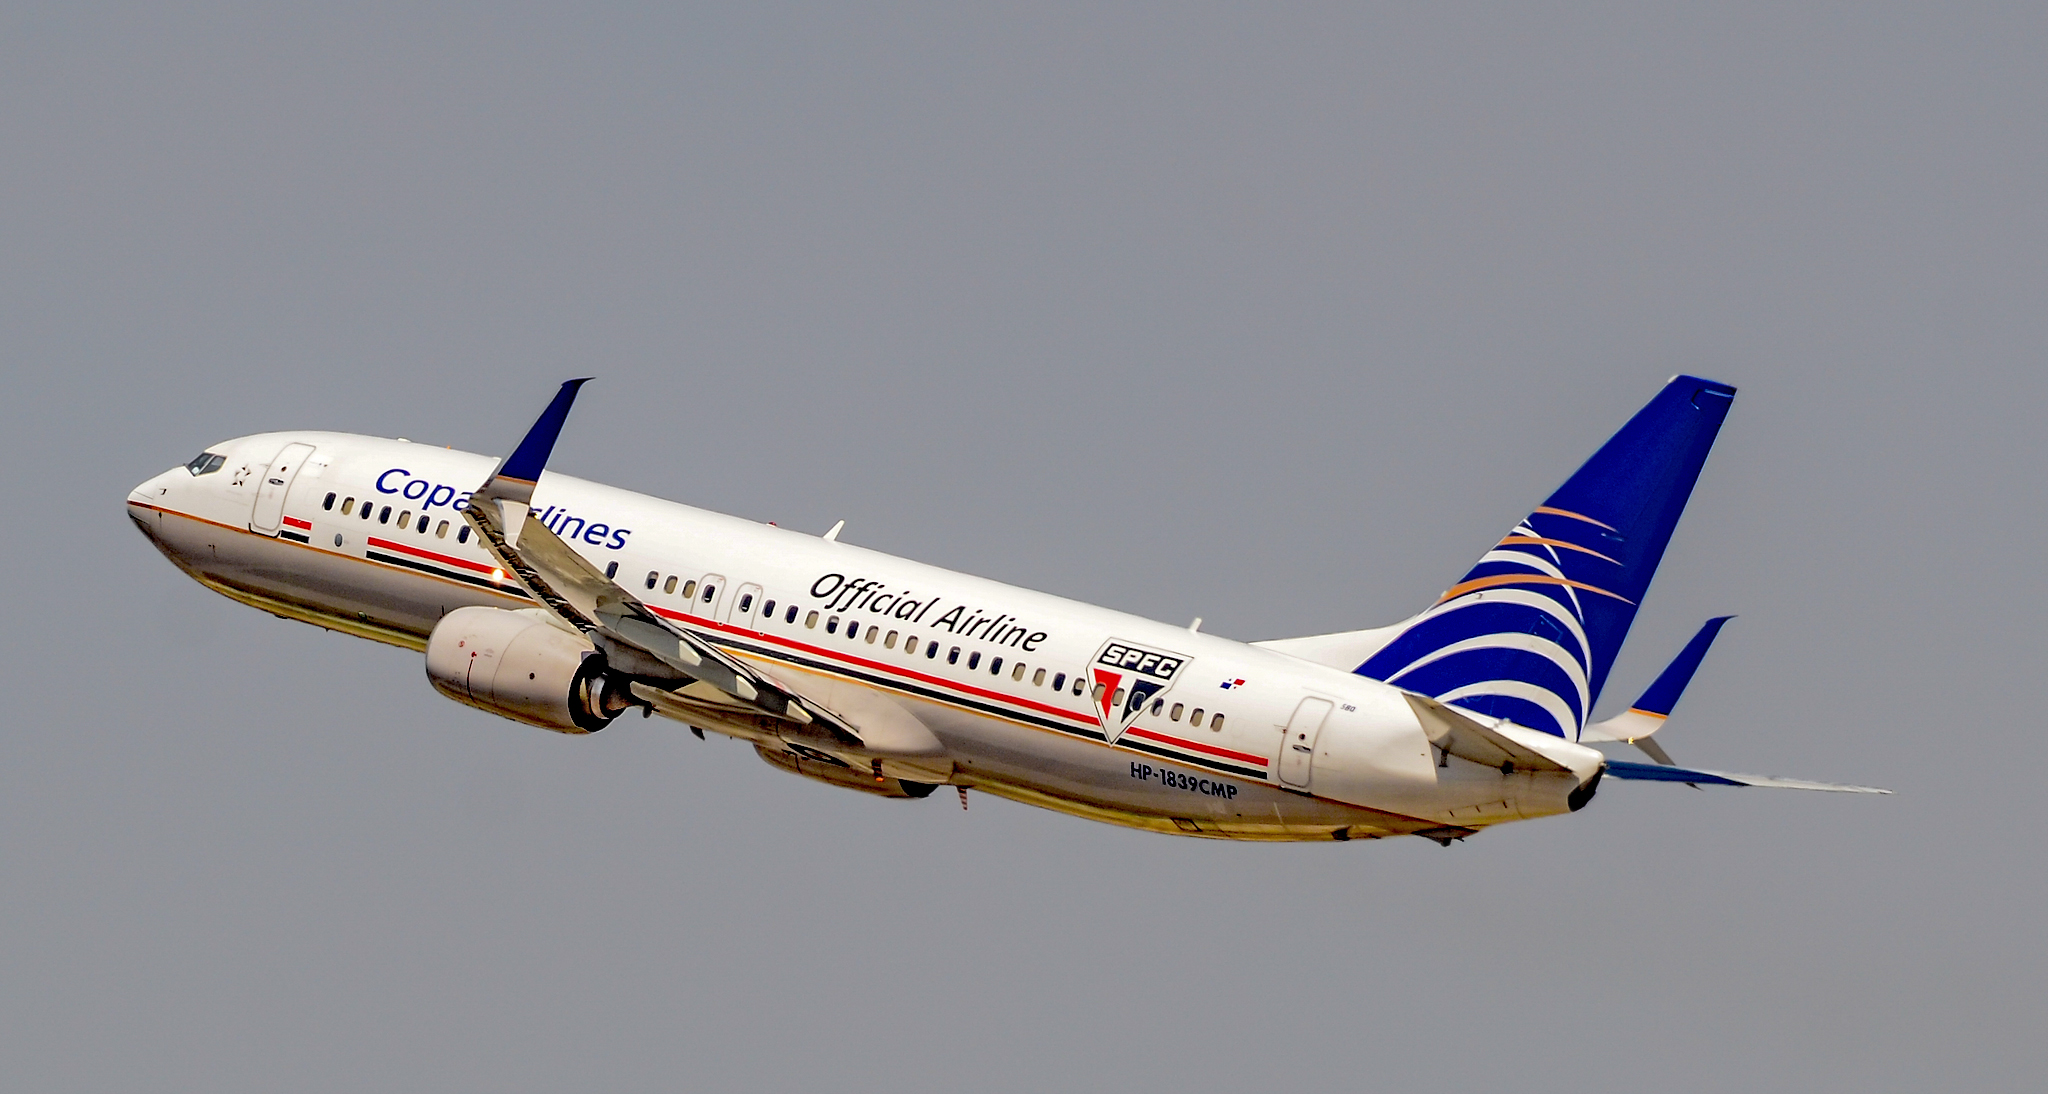 file hp 1839cmp copa airlines boeing 737 8v3 s n 41446 36270649794 rh commons wikimedia org